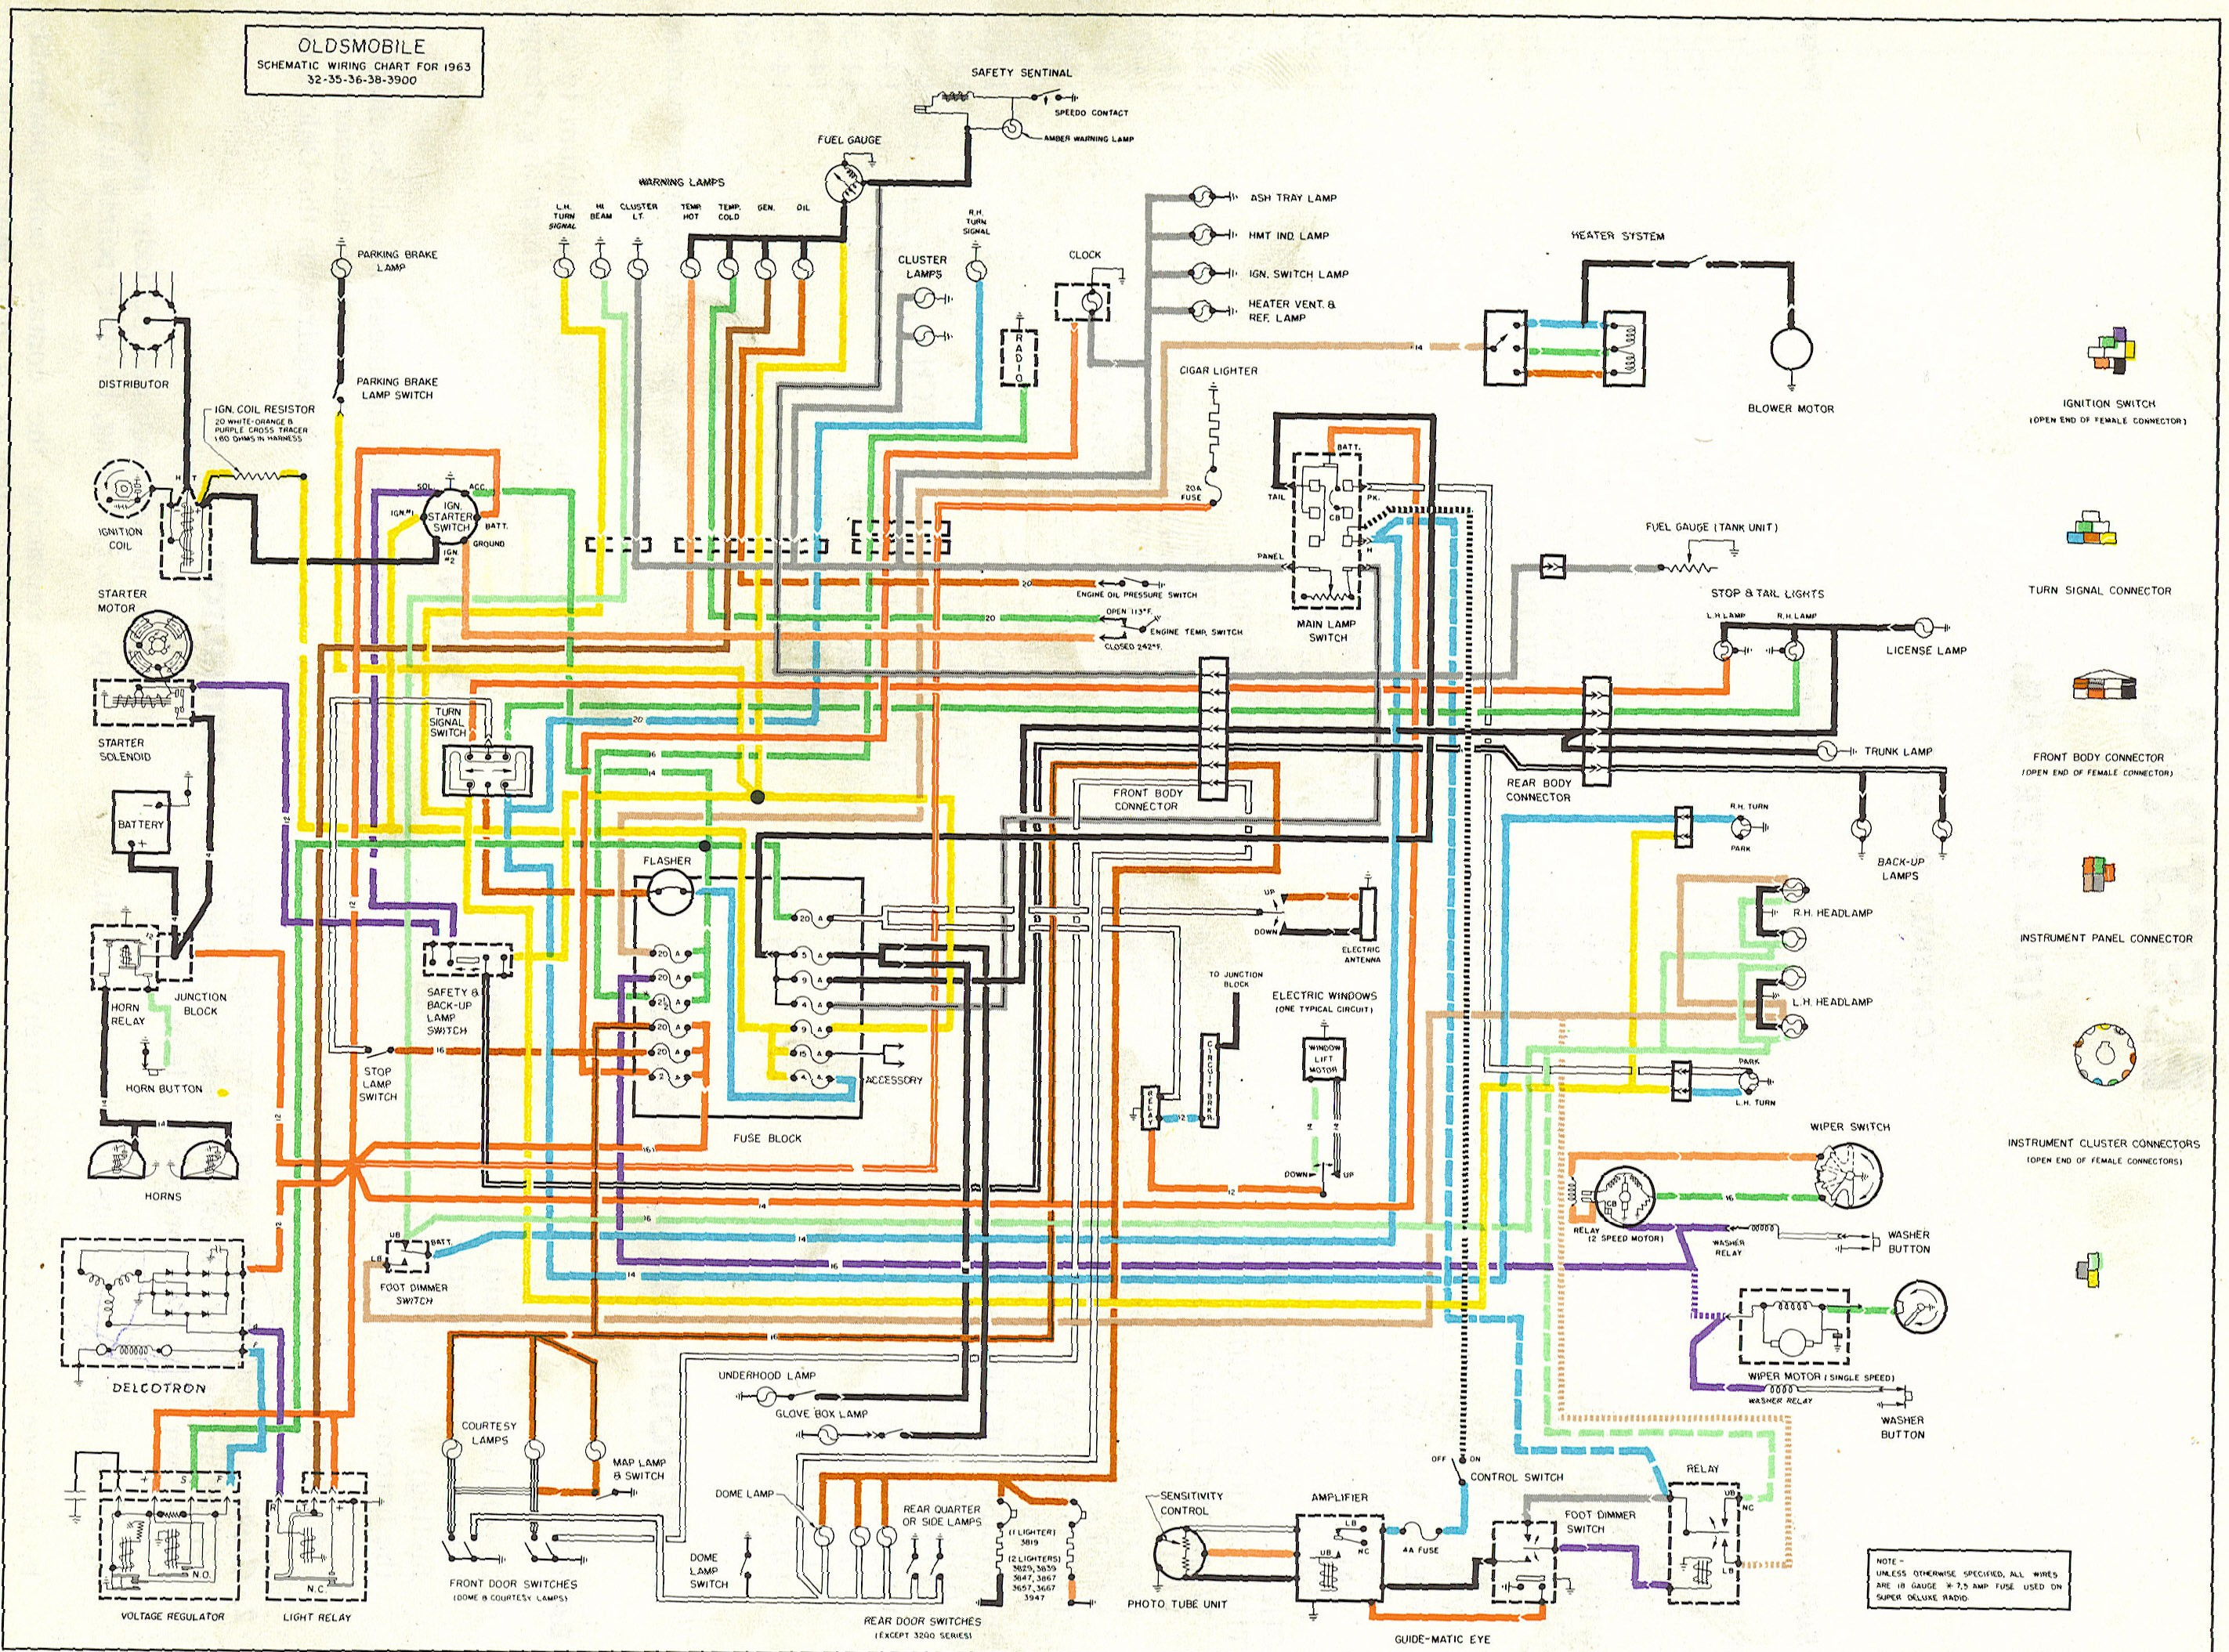 Tic Toc Tach Wiring Diagram Free For You Oldsmobile Diagrams Library Mopar Sun Super